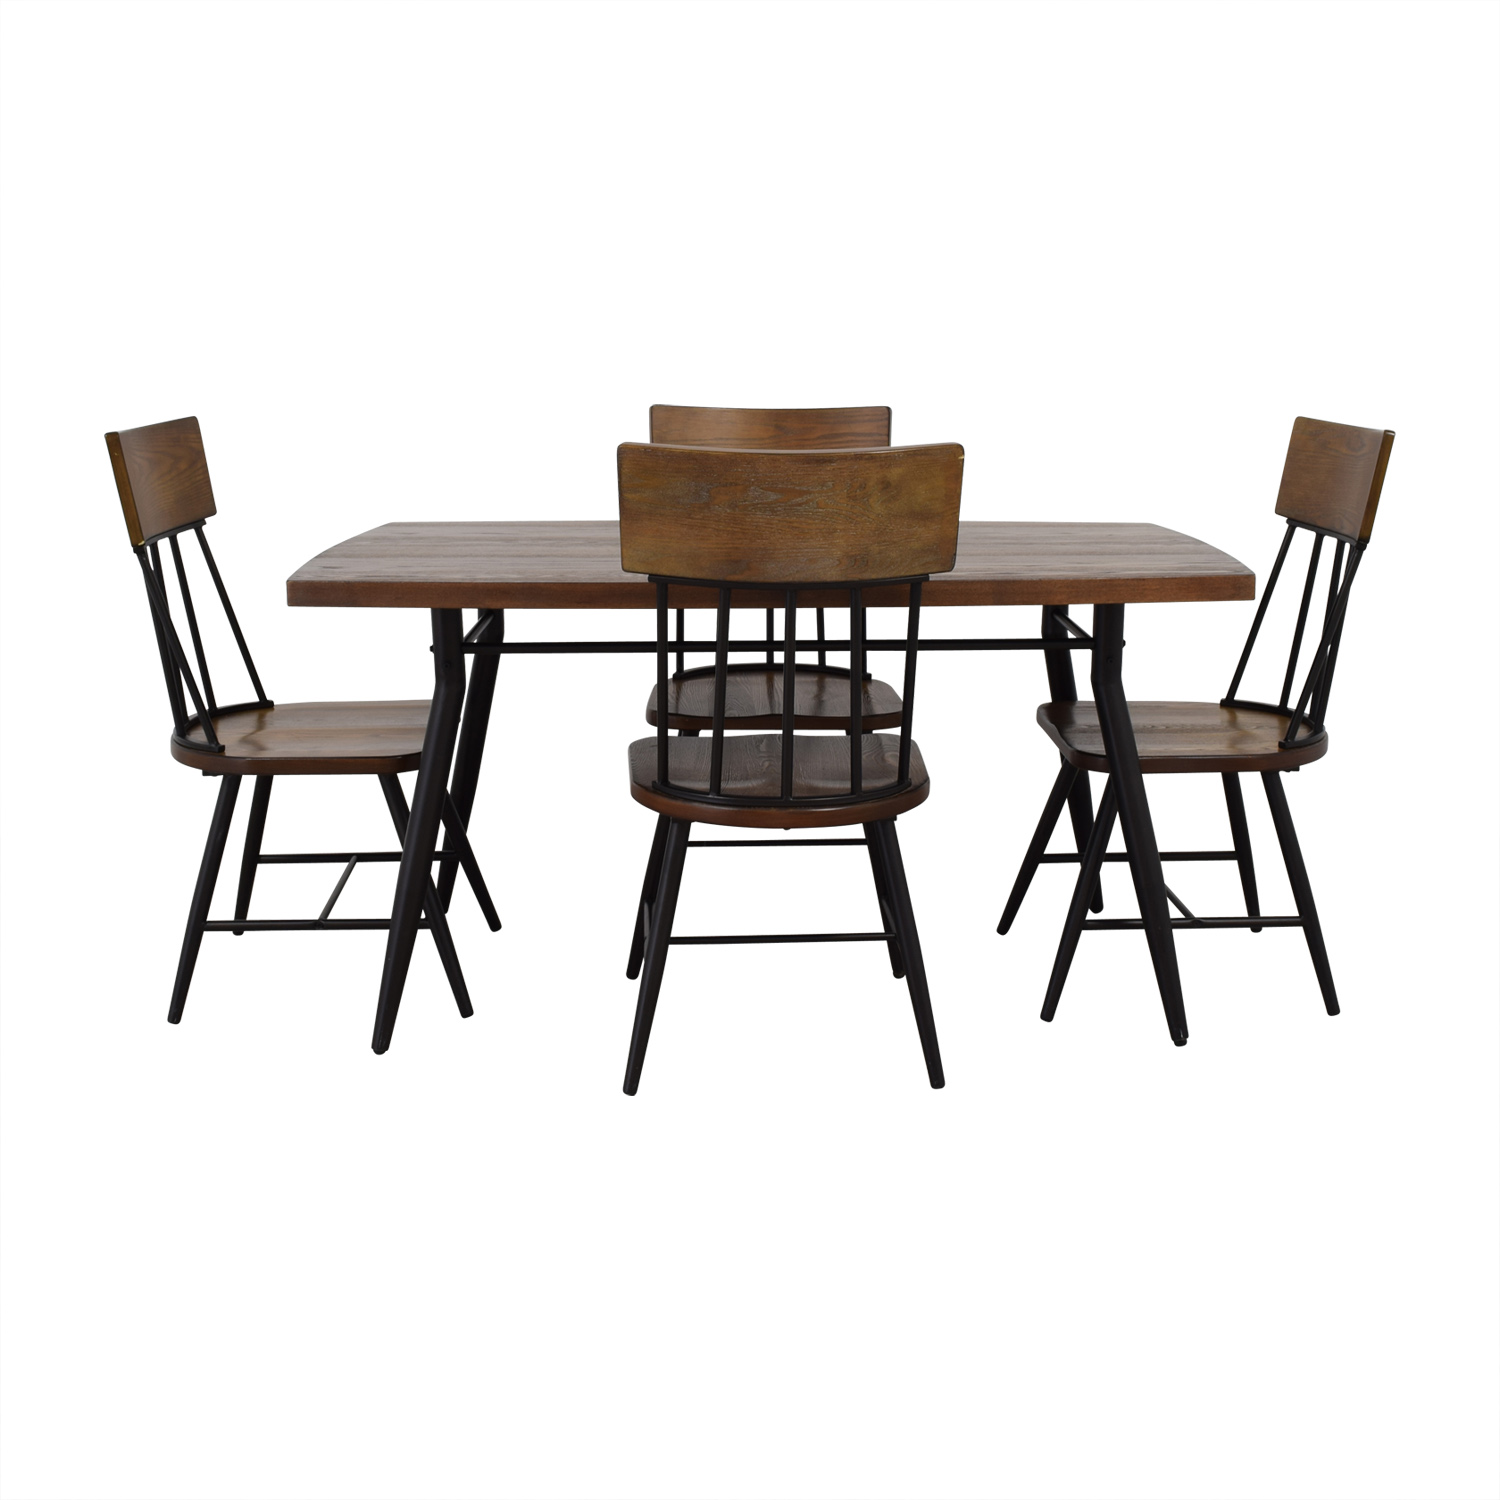 Ashley Furniture Wood Dining Room Table And Chair Set Coupon